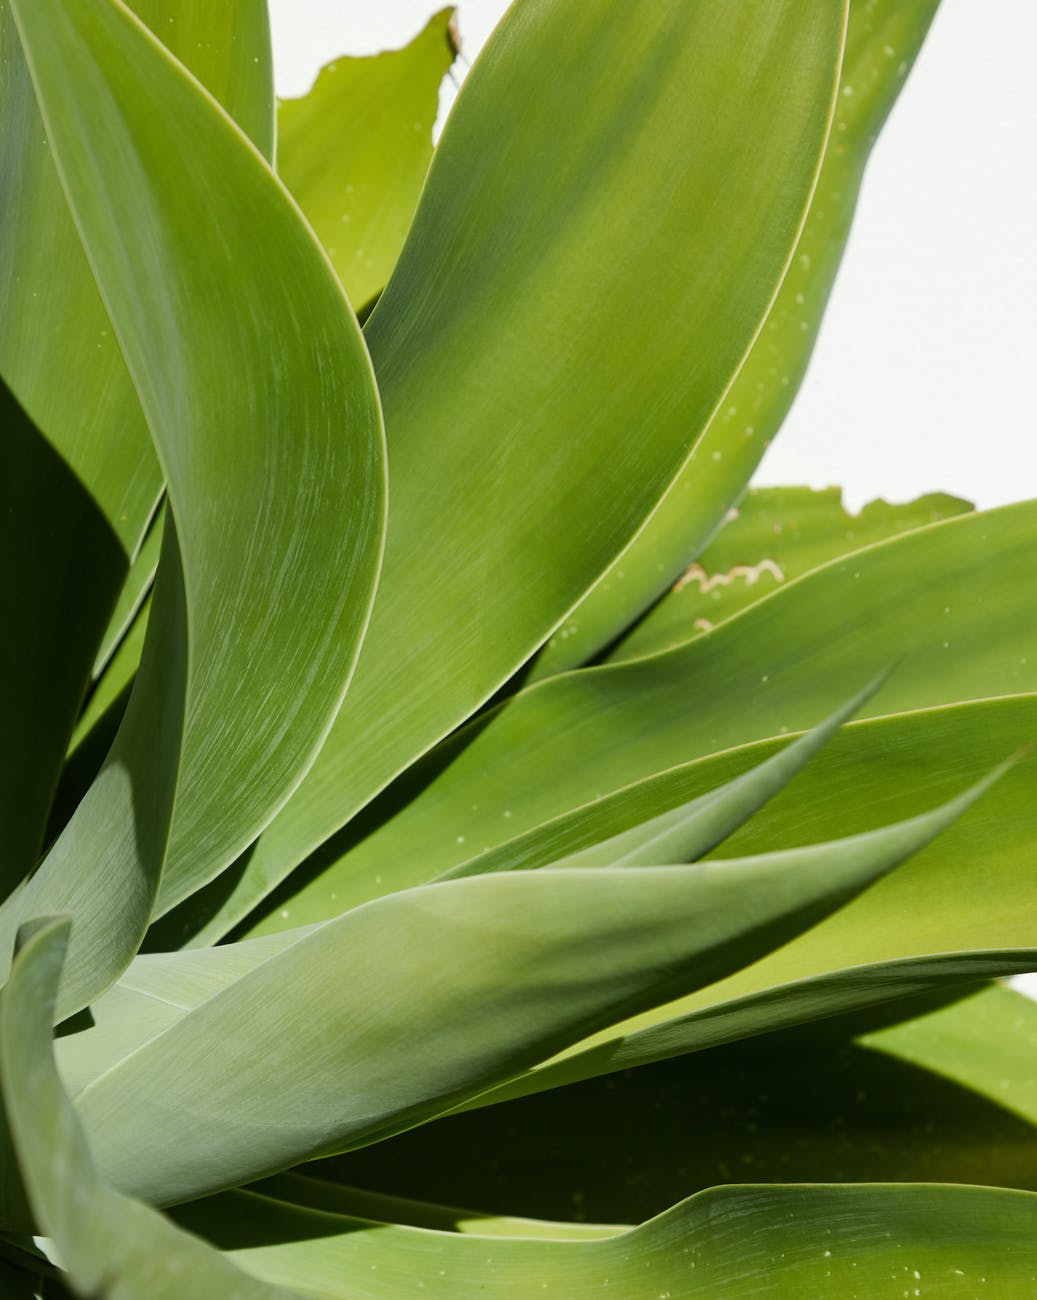 leaves of green potted plant